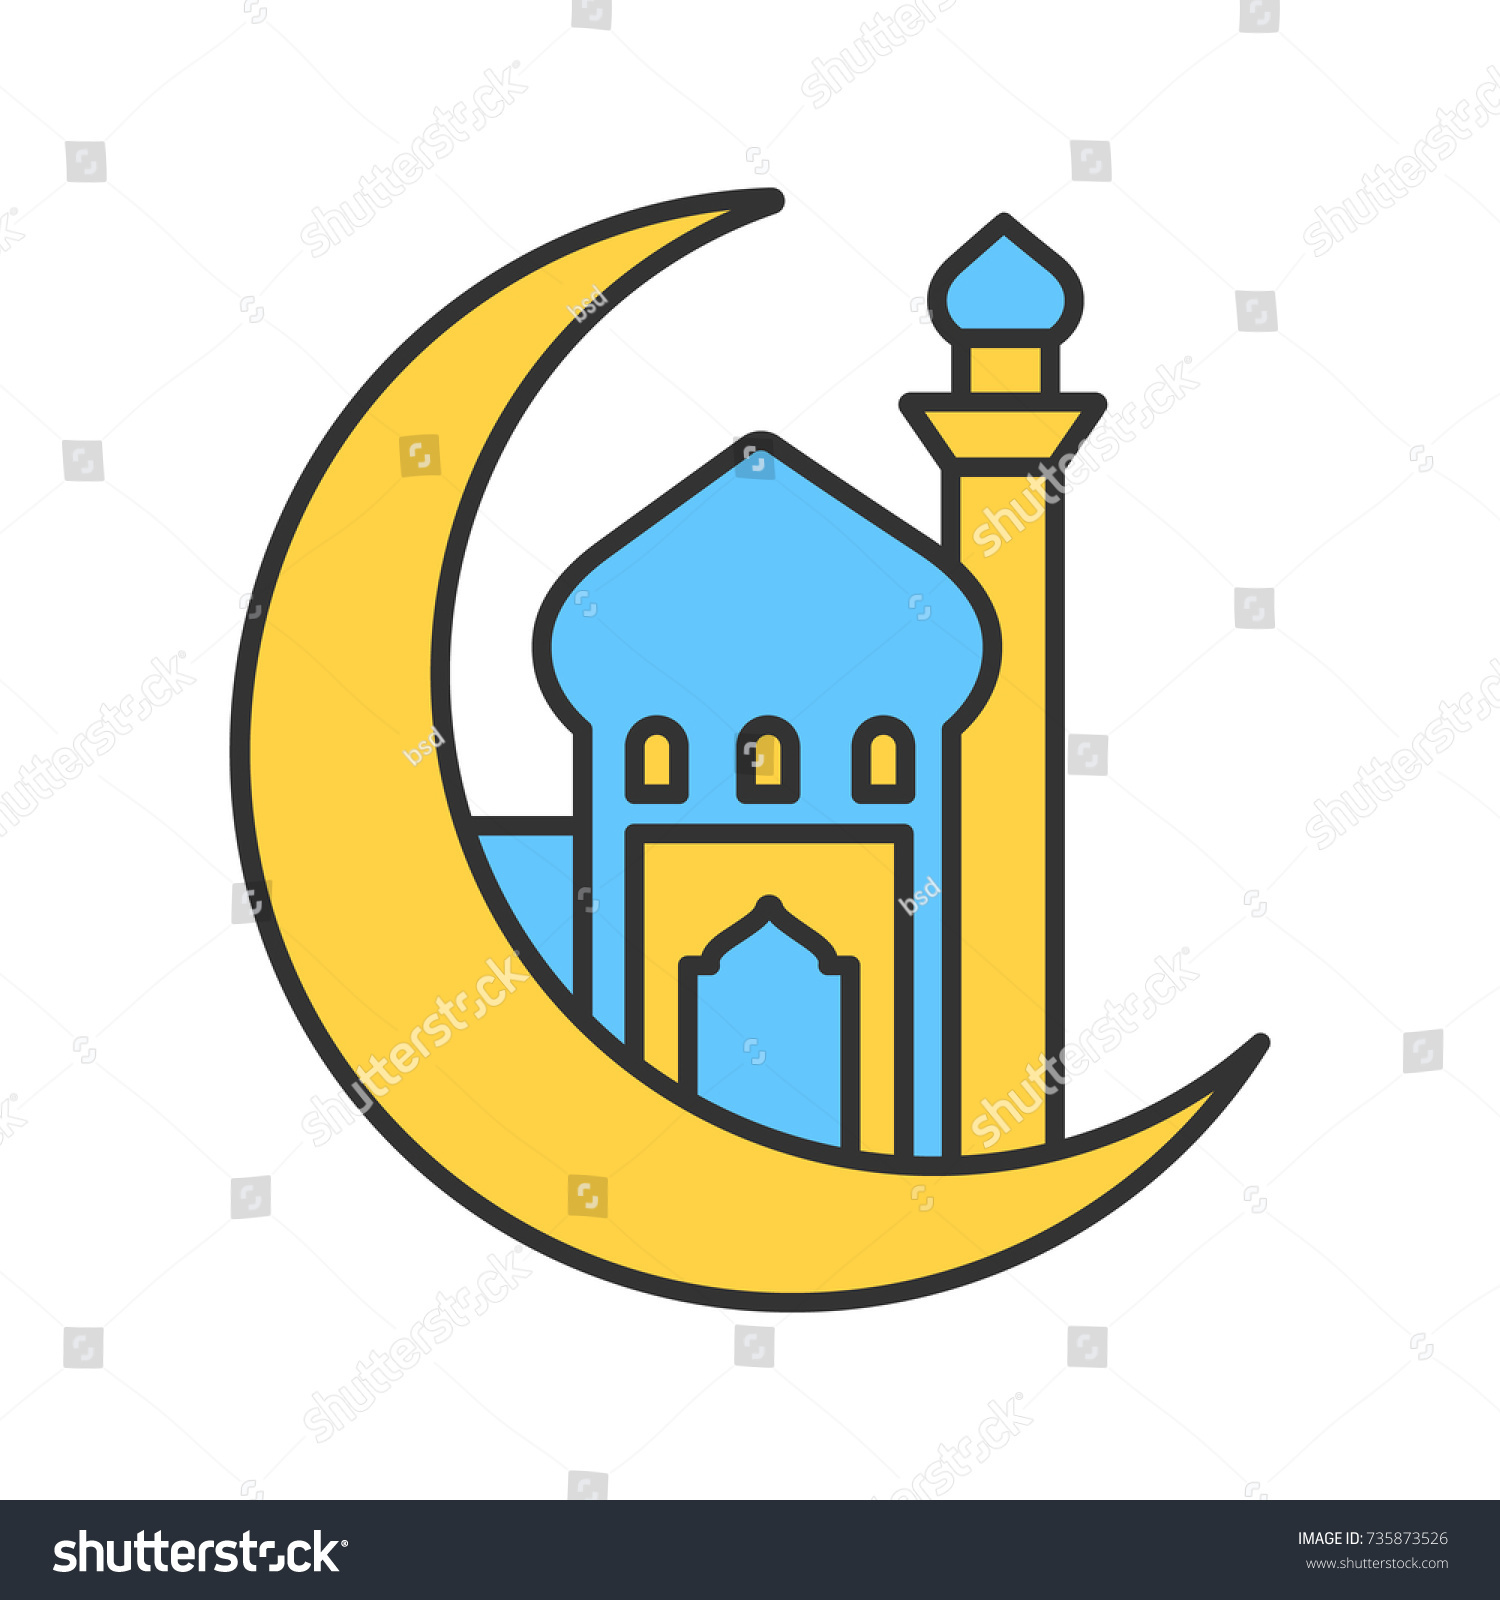 Mosque ramadan moon color icon crescent stock vector 735873526 mosque with ramadan moon color icon crescent moon islamic culture muslim worship place biocorpaavc